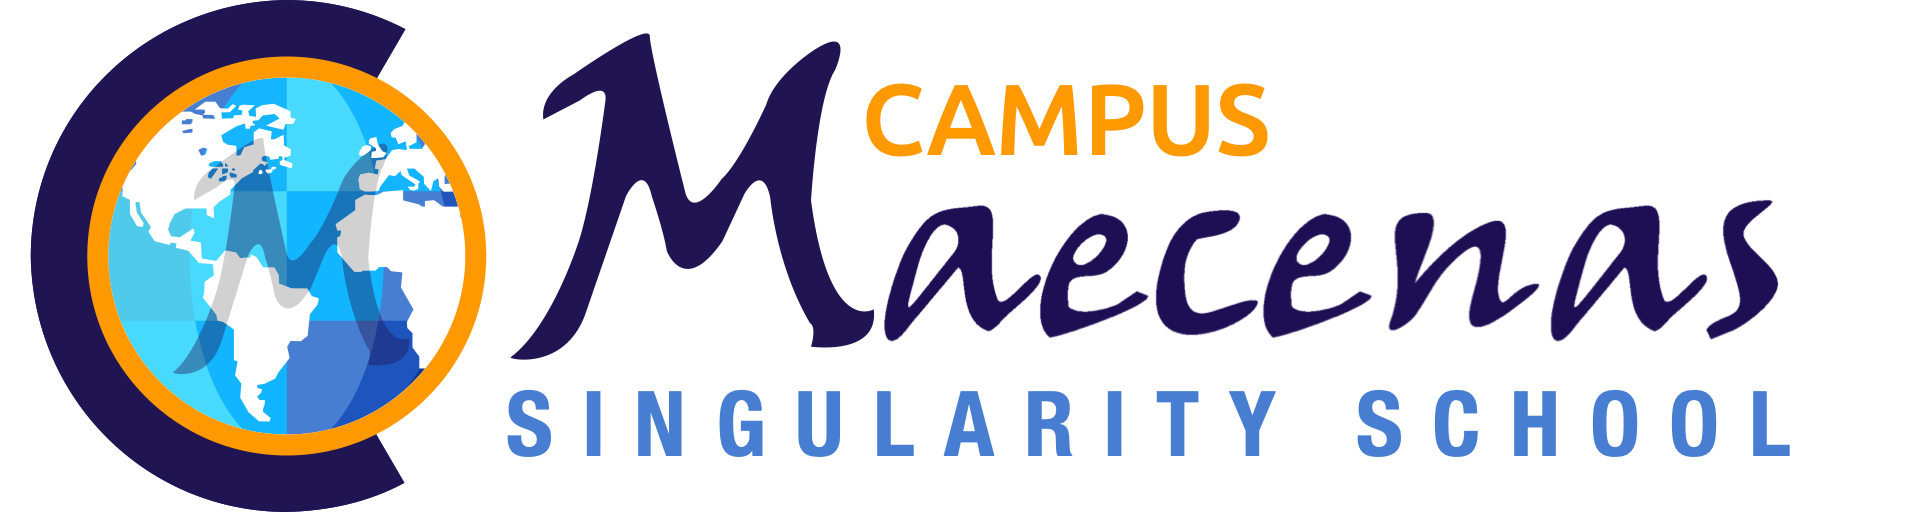 Campus Maecenas Singularity School